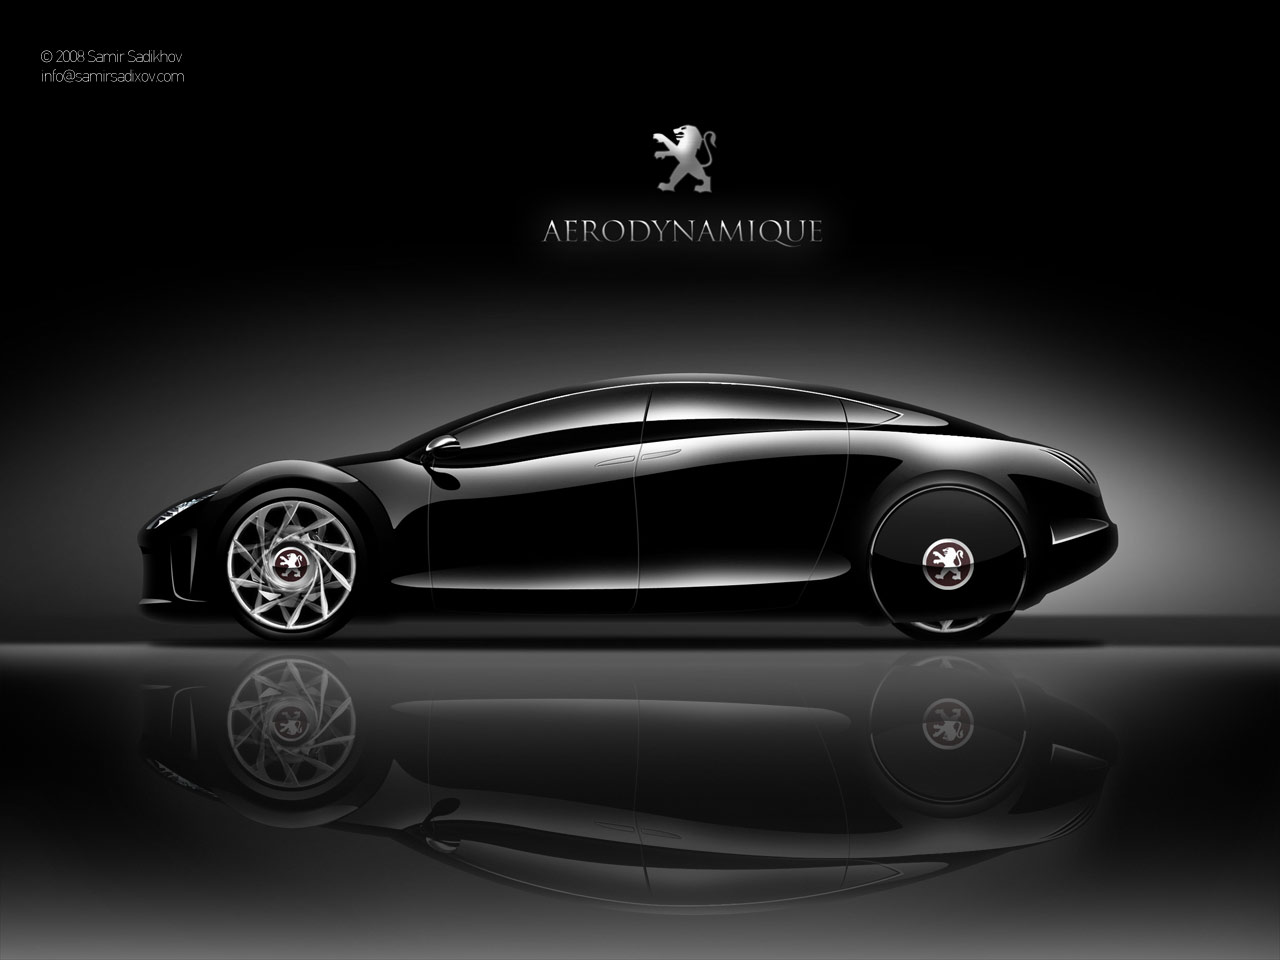 Peugeot Aerodynamique by Samirs